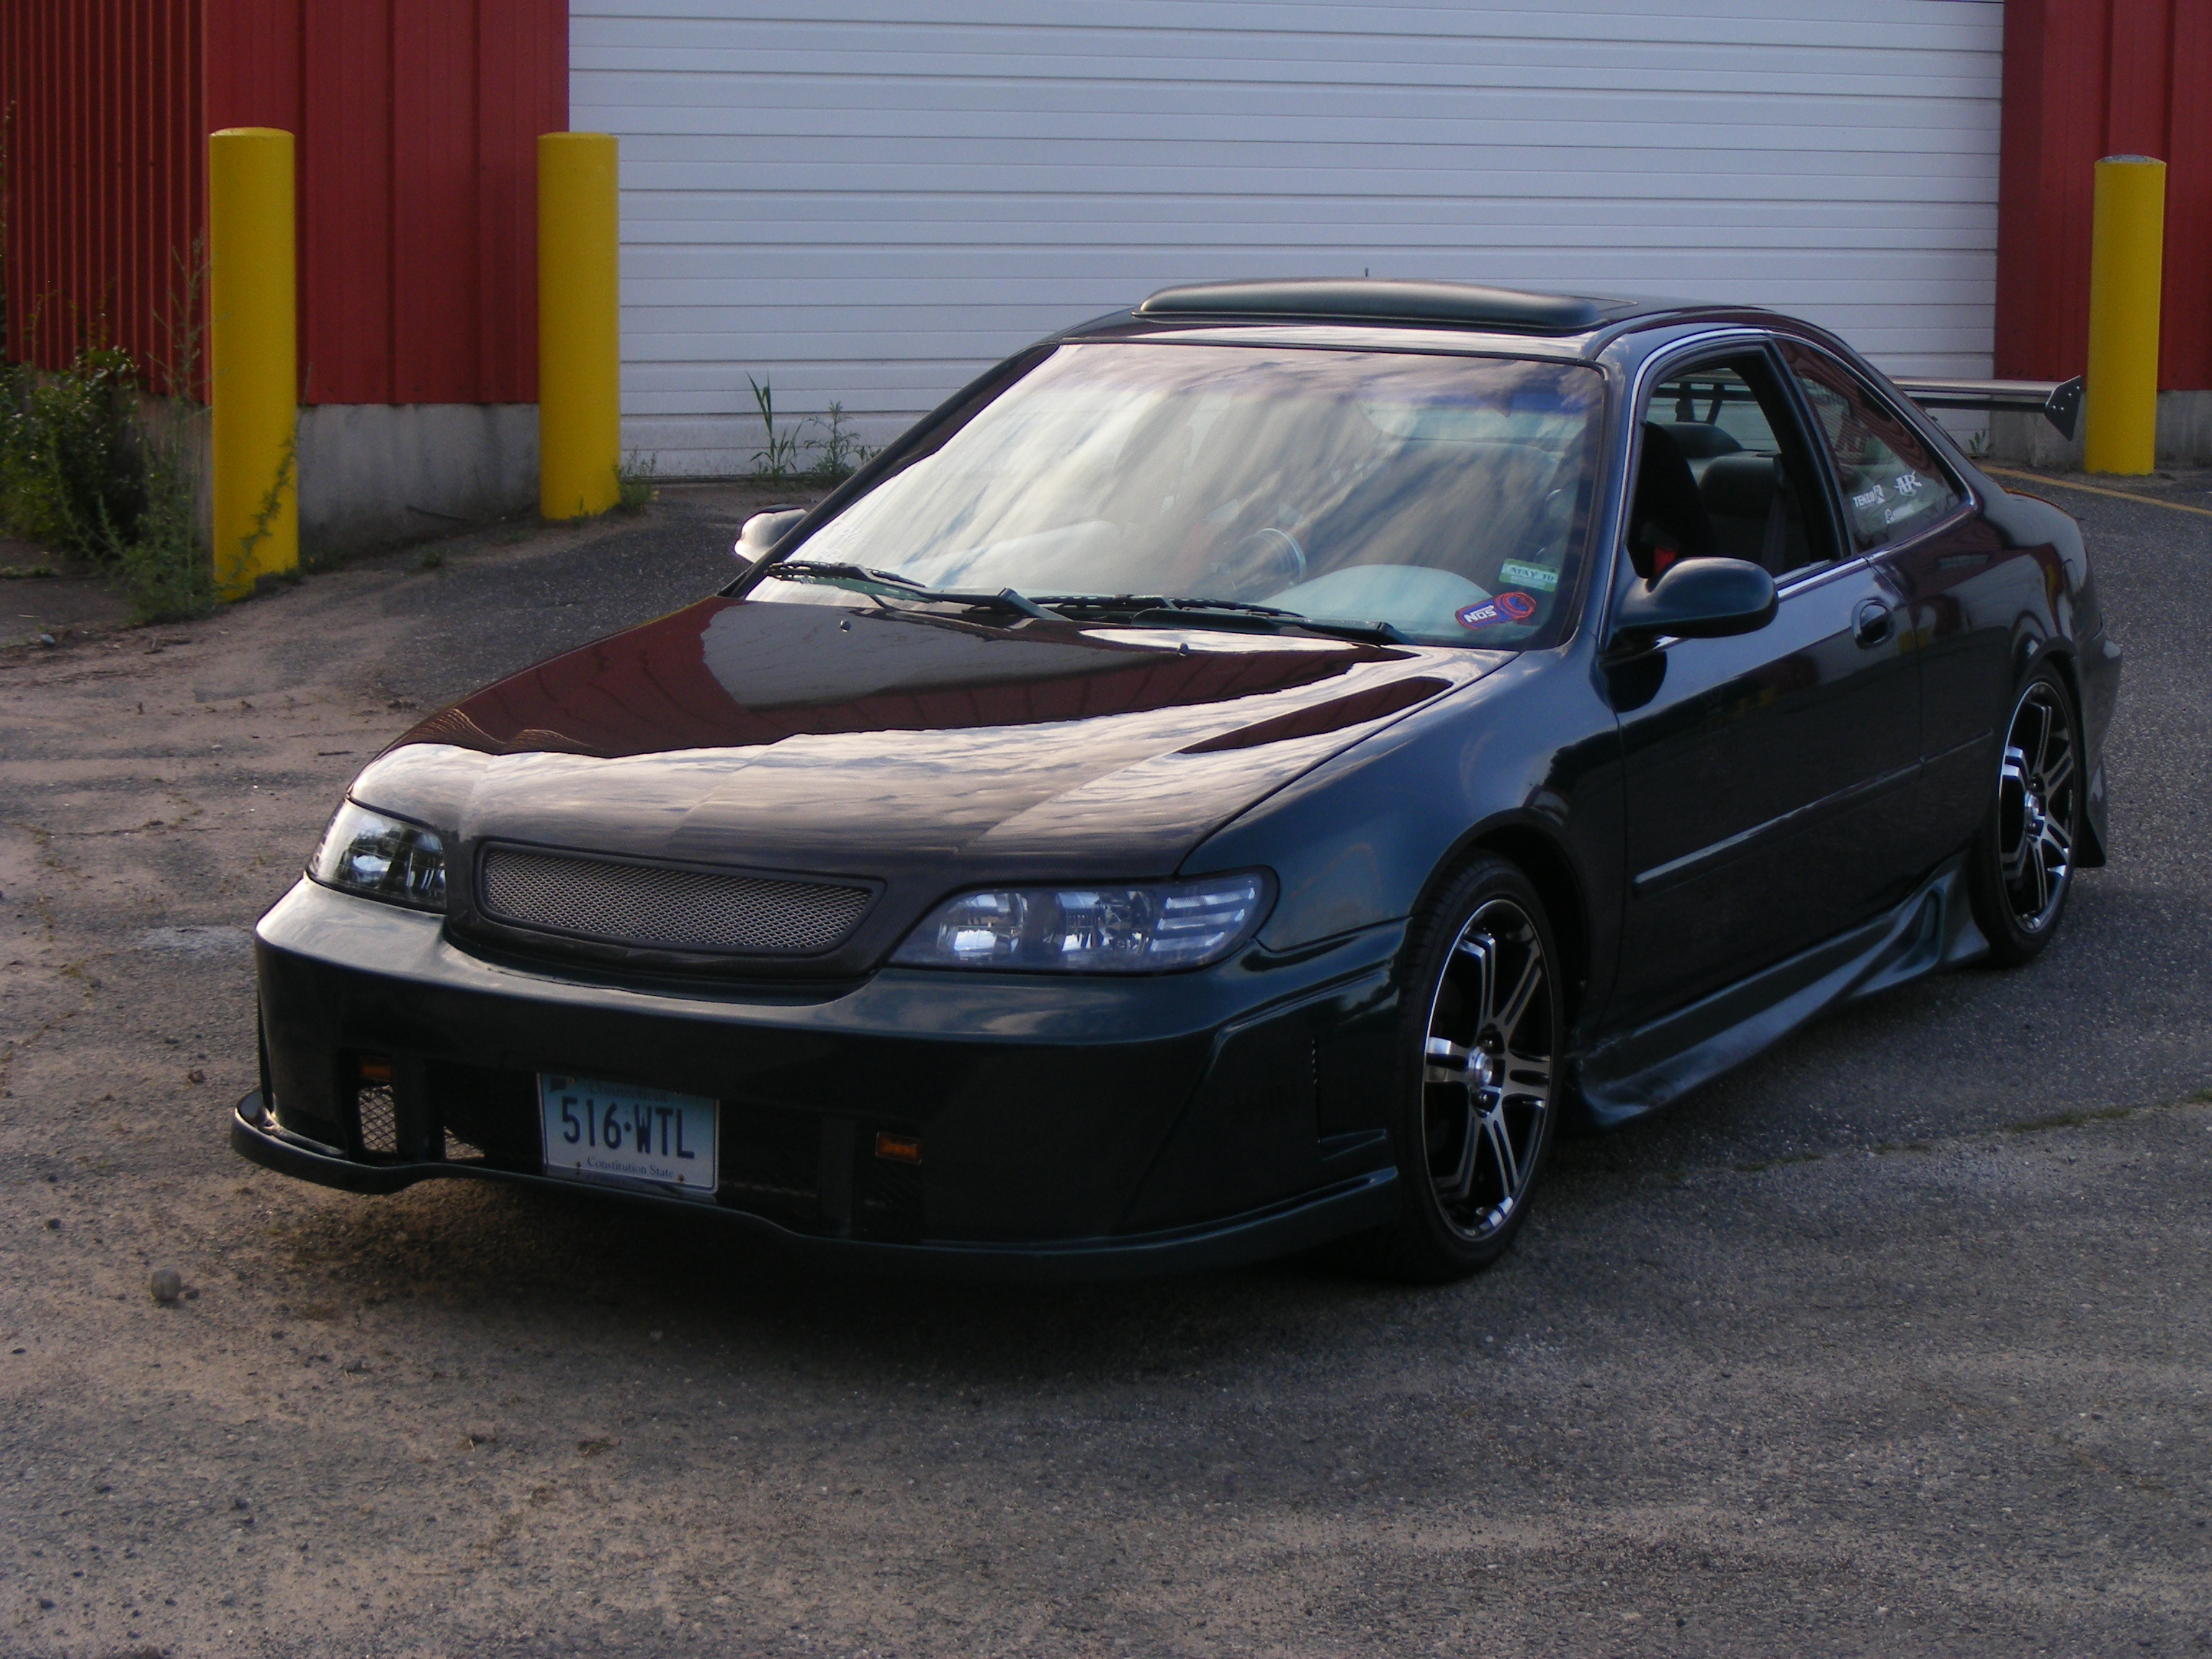 medium resolution of customclrider s 1997 acura cl